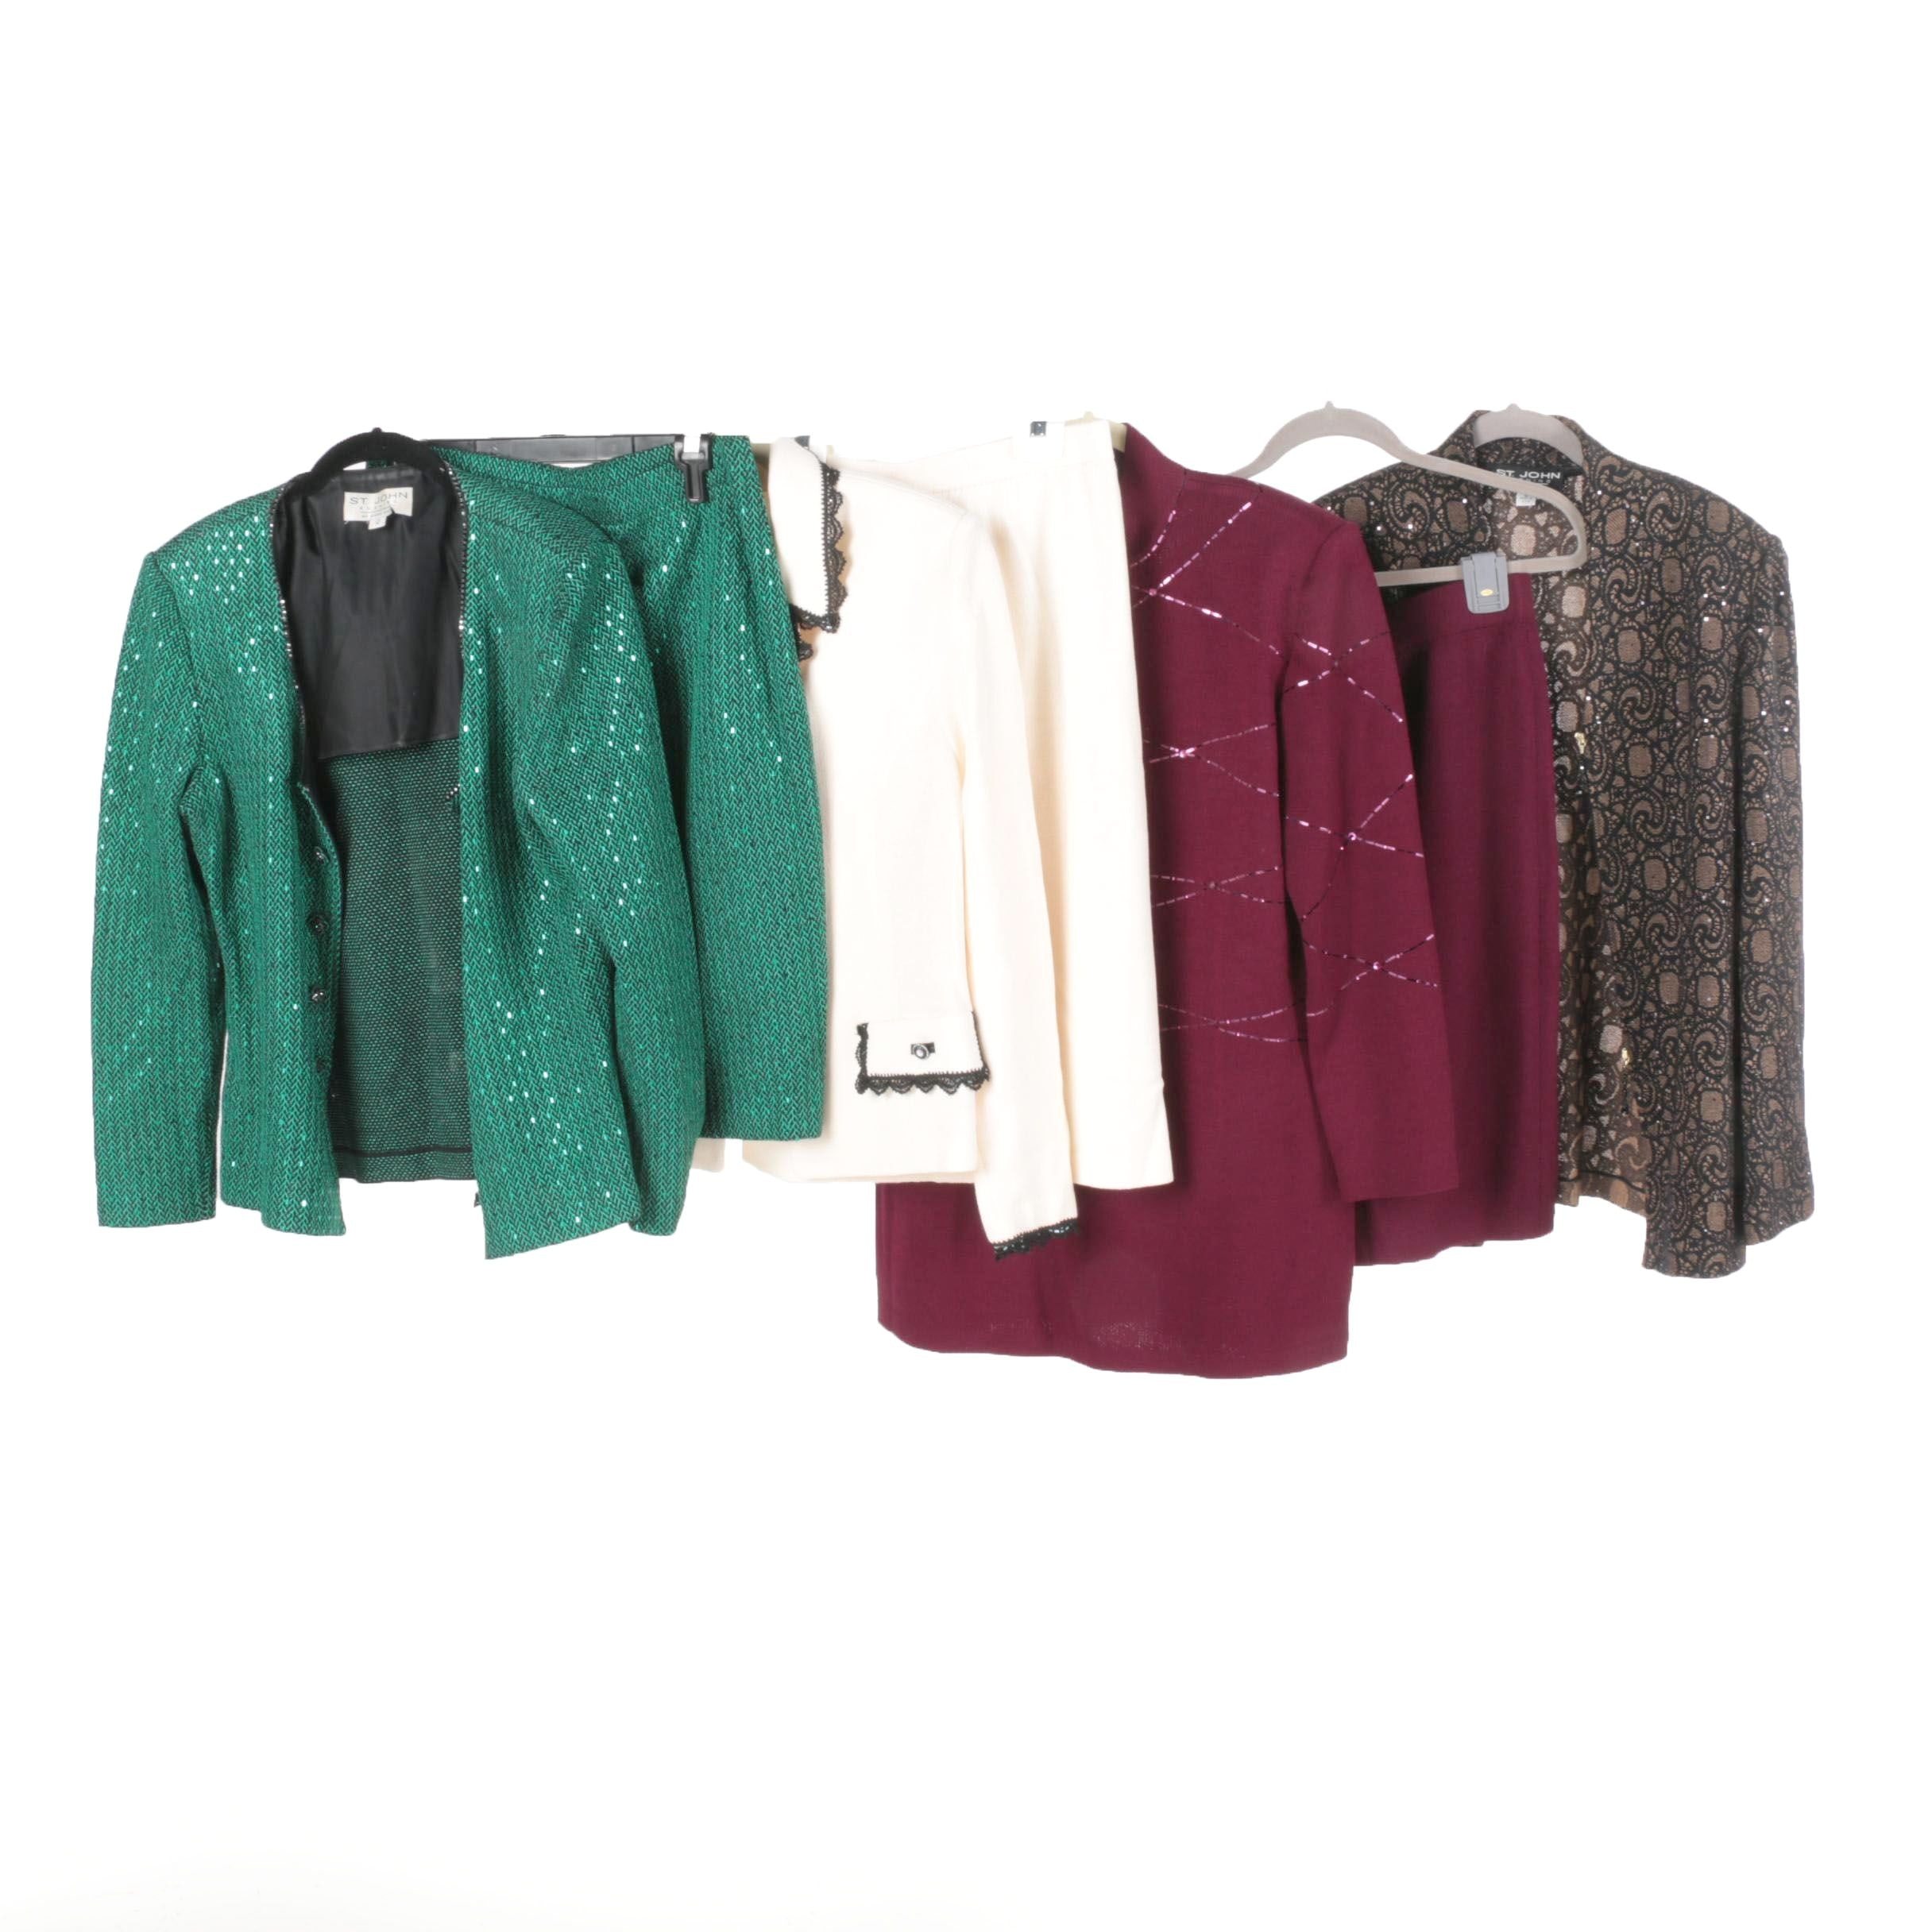 St. Johns Evening Skirts Suits and Jacket